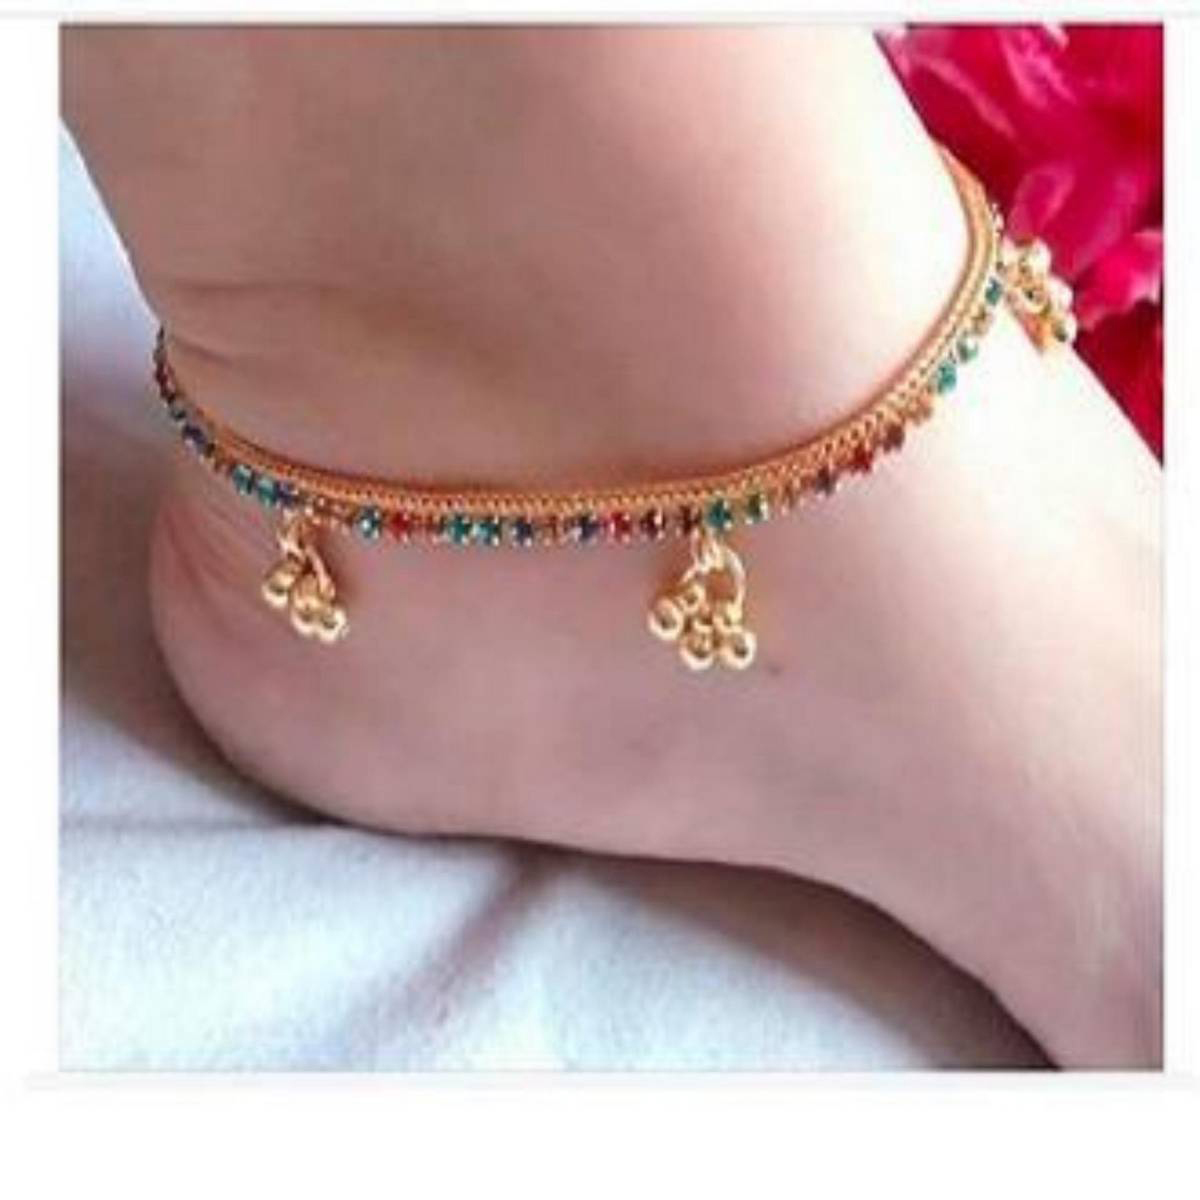 Golden Alloy Latest Fashion Artificial Jewellery Collection Elegant for Girls Women (10 inch) Brass Anklet